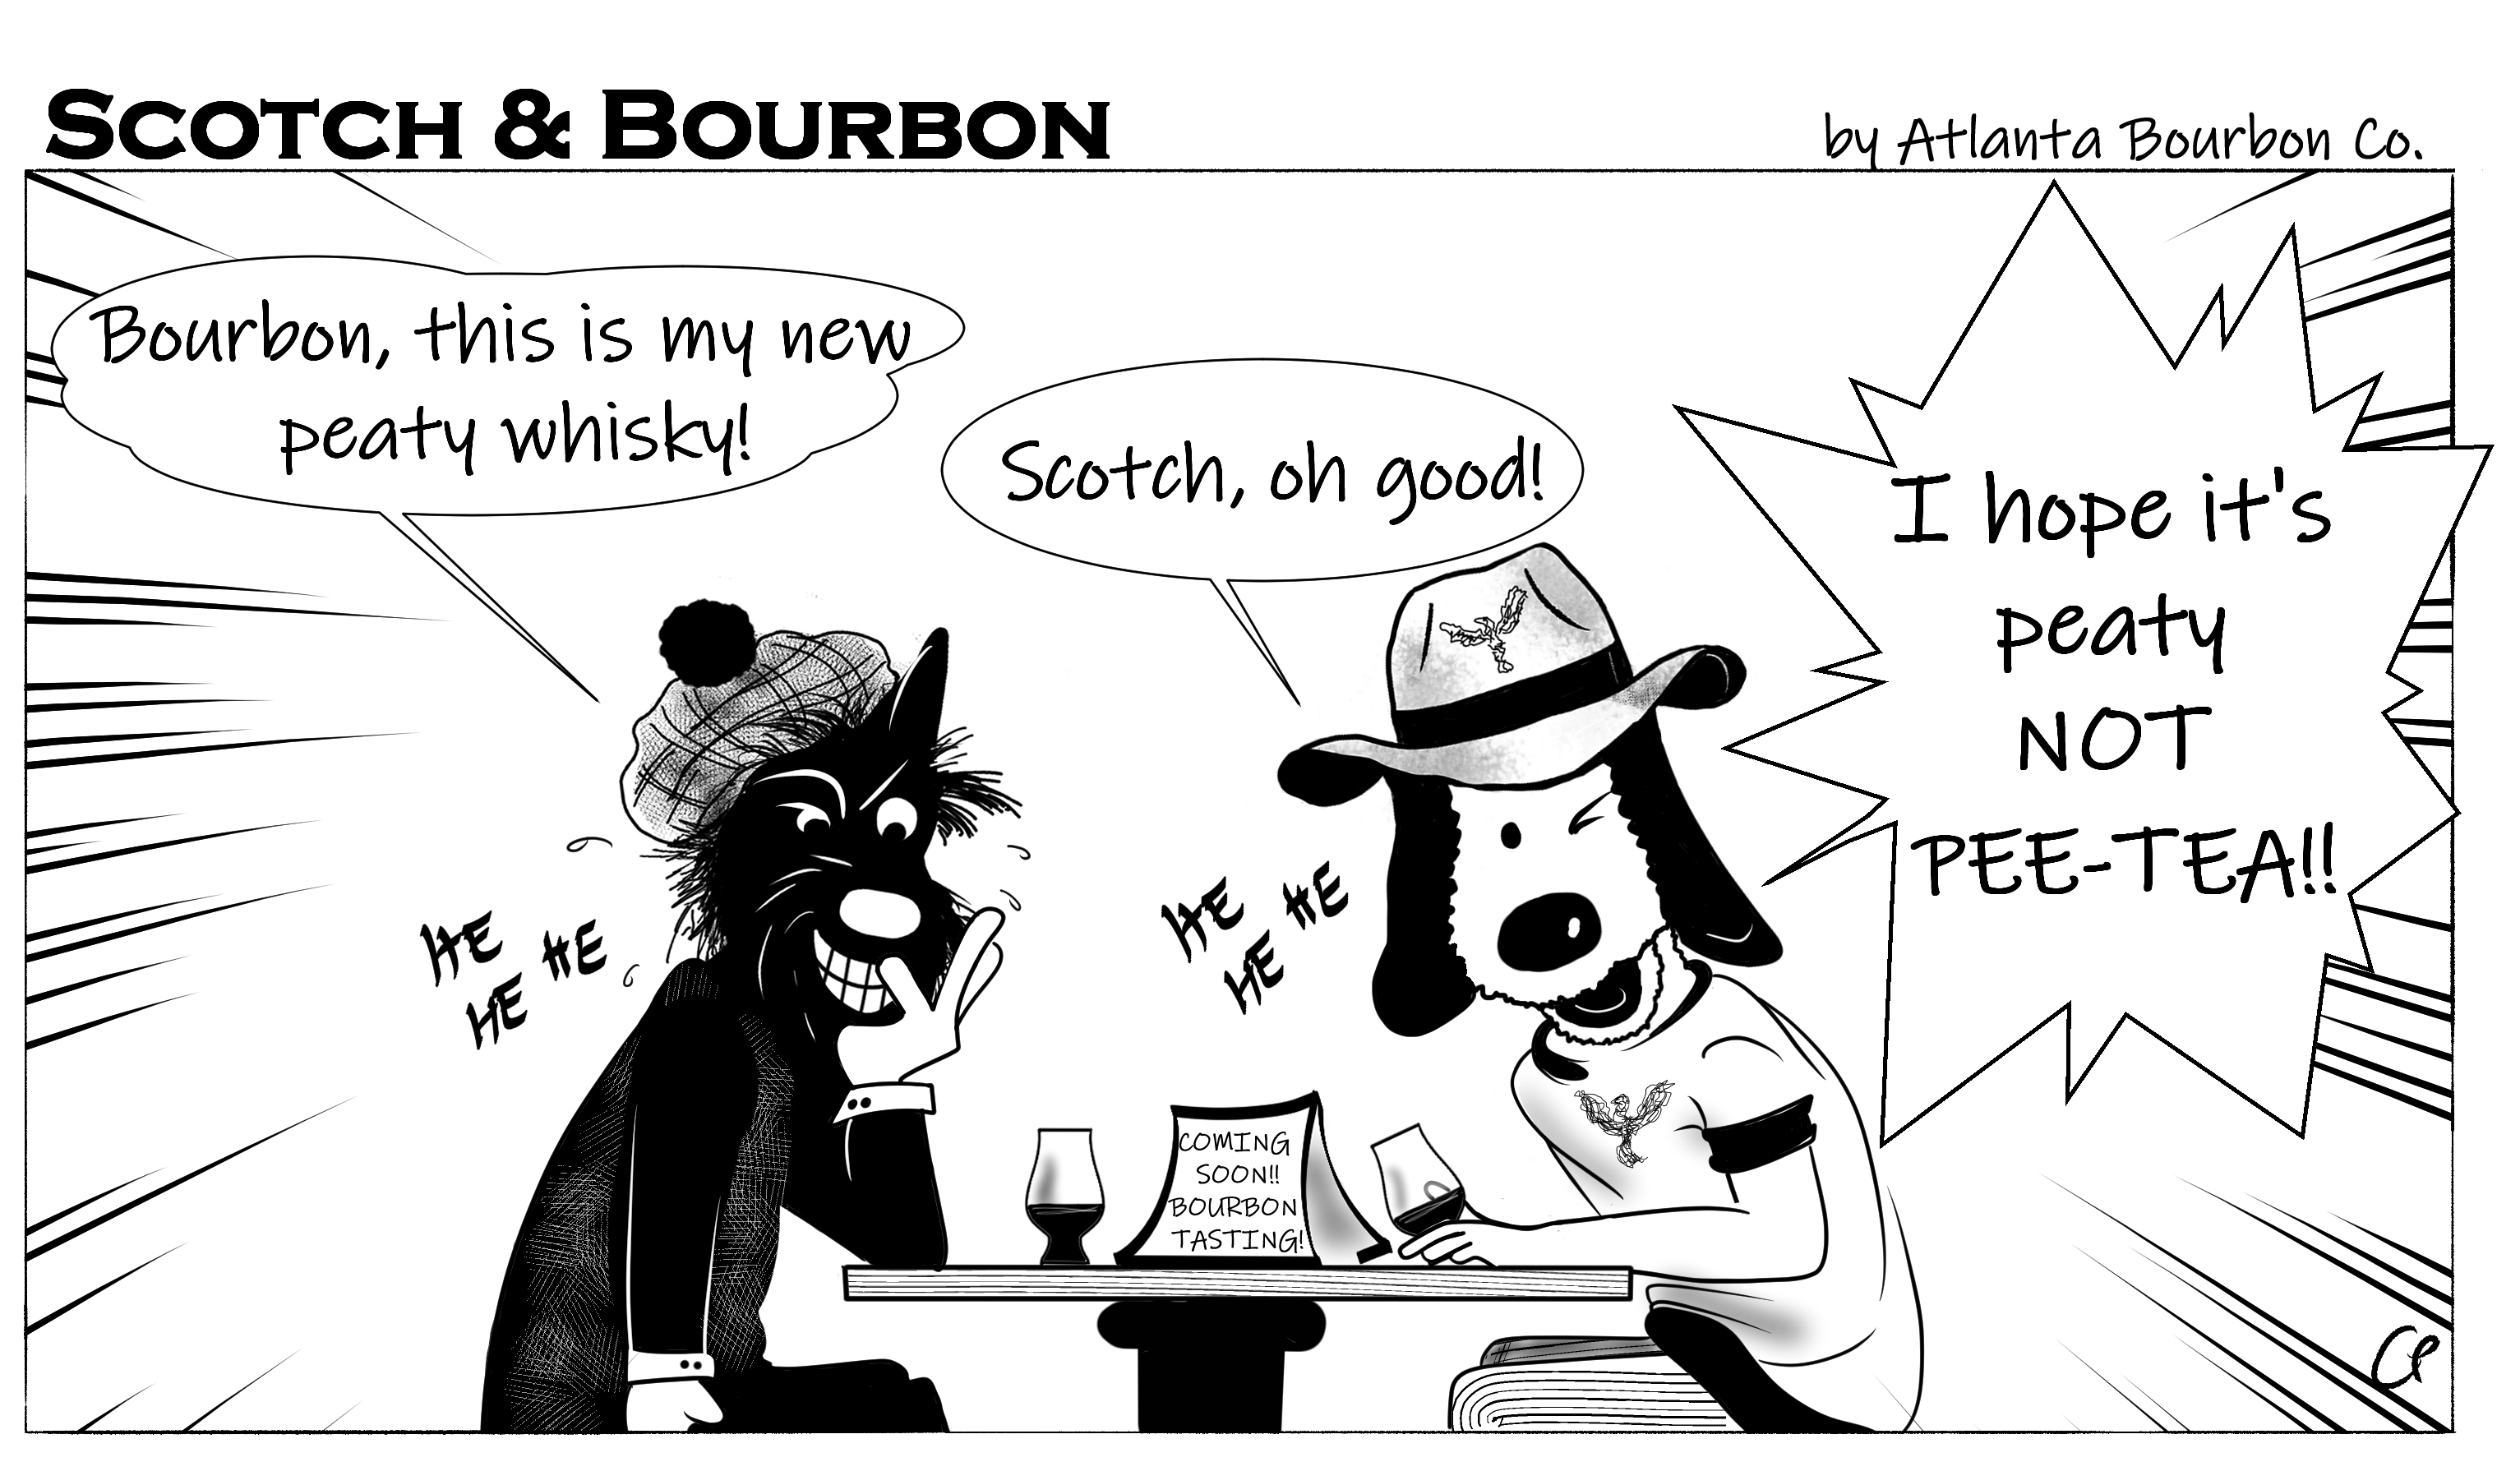 Scotch & Bourbon Cartoon: I hope it's peaty whisky #10